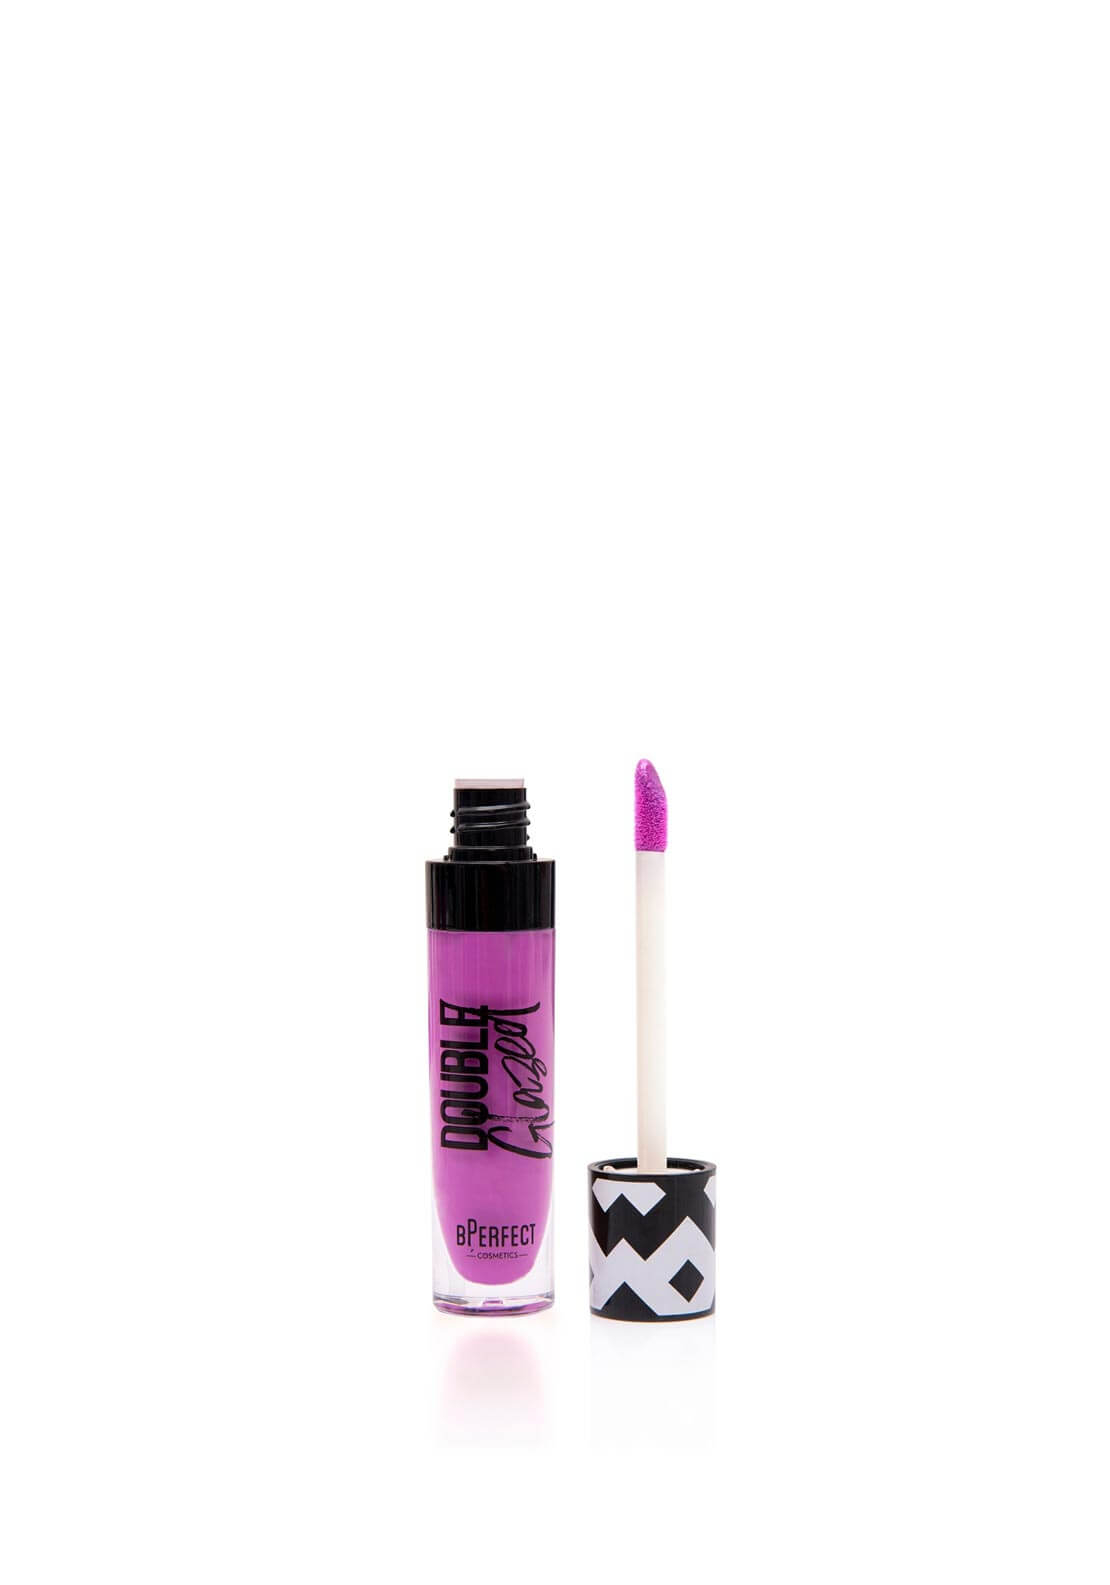 BPerfect Stacey Marie Double Glazed Lip Gloss, Girl Code